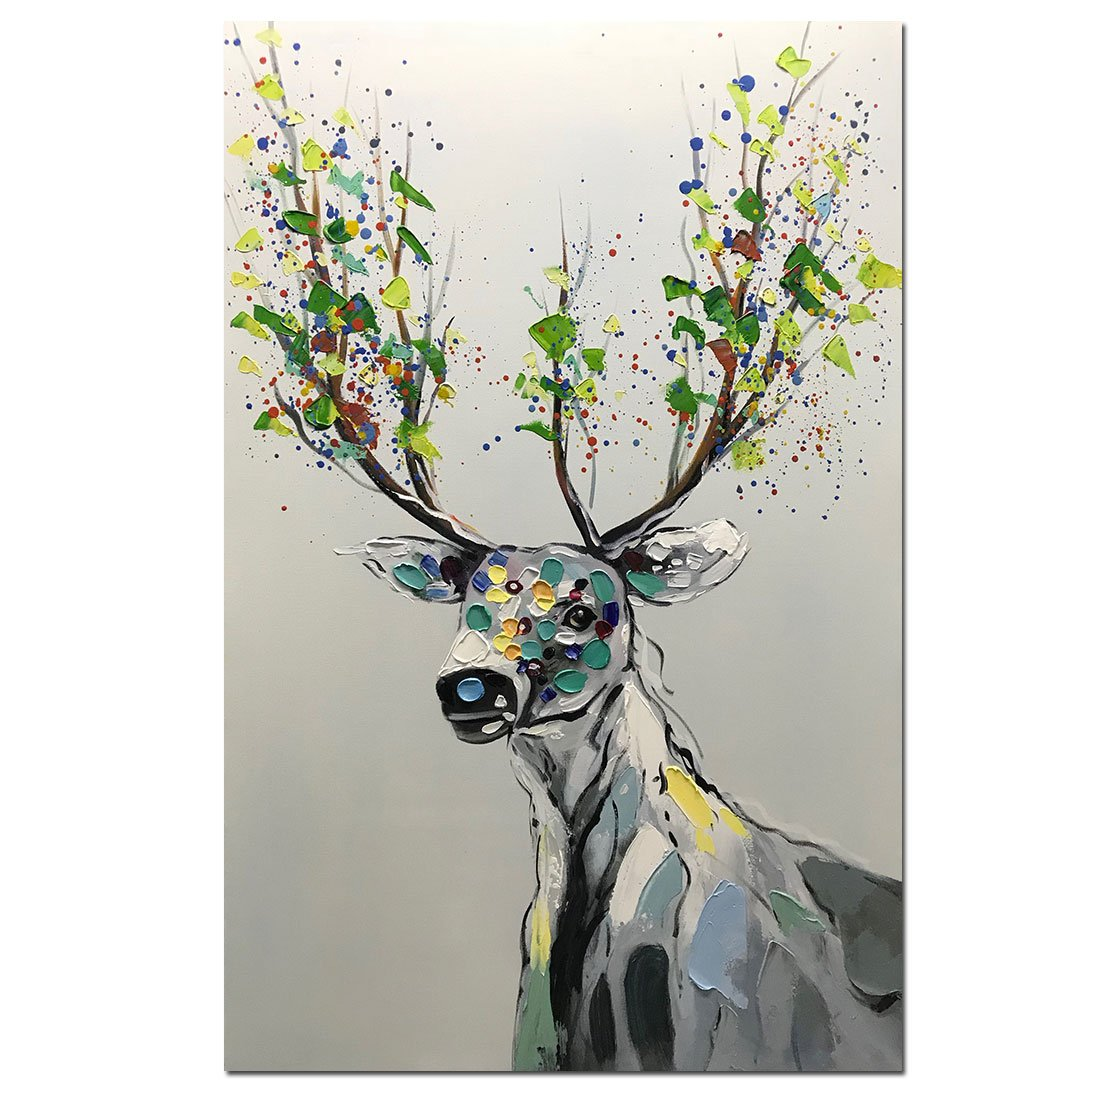 Asdam Art-Abstract Colorful Deer Painting On Canvas 100% Hand Painted Animal Artwork Wall Art fot Living Room Dining Room Bedroom Home Office Modern Wall Décor(24X36inch)